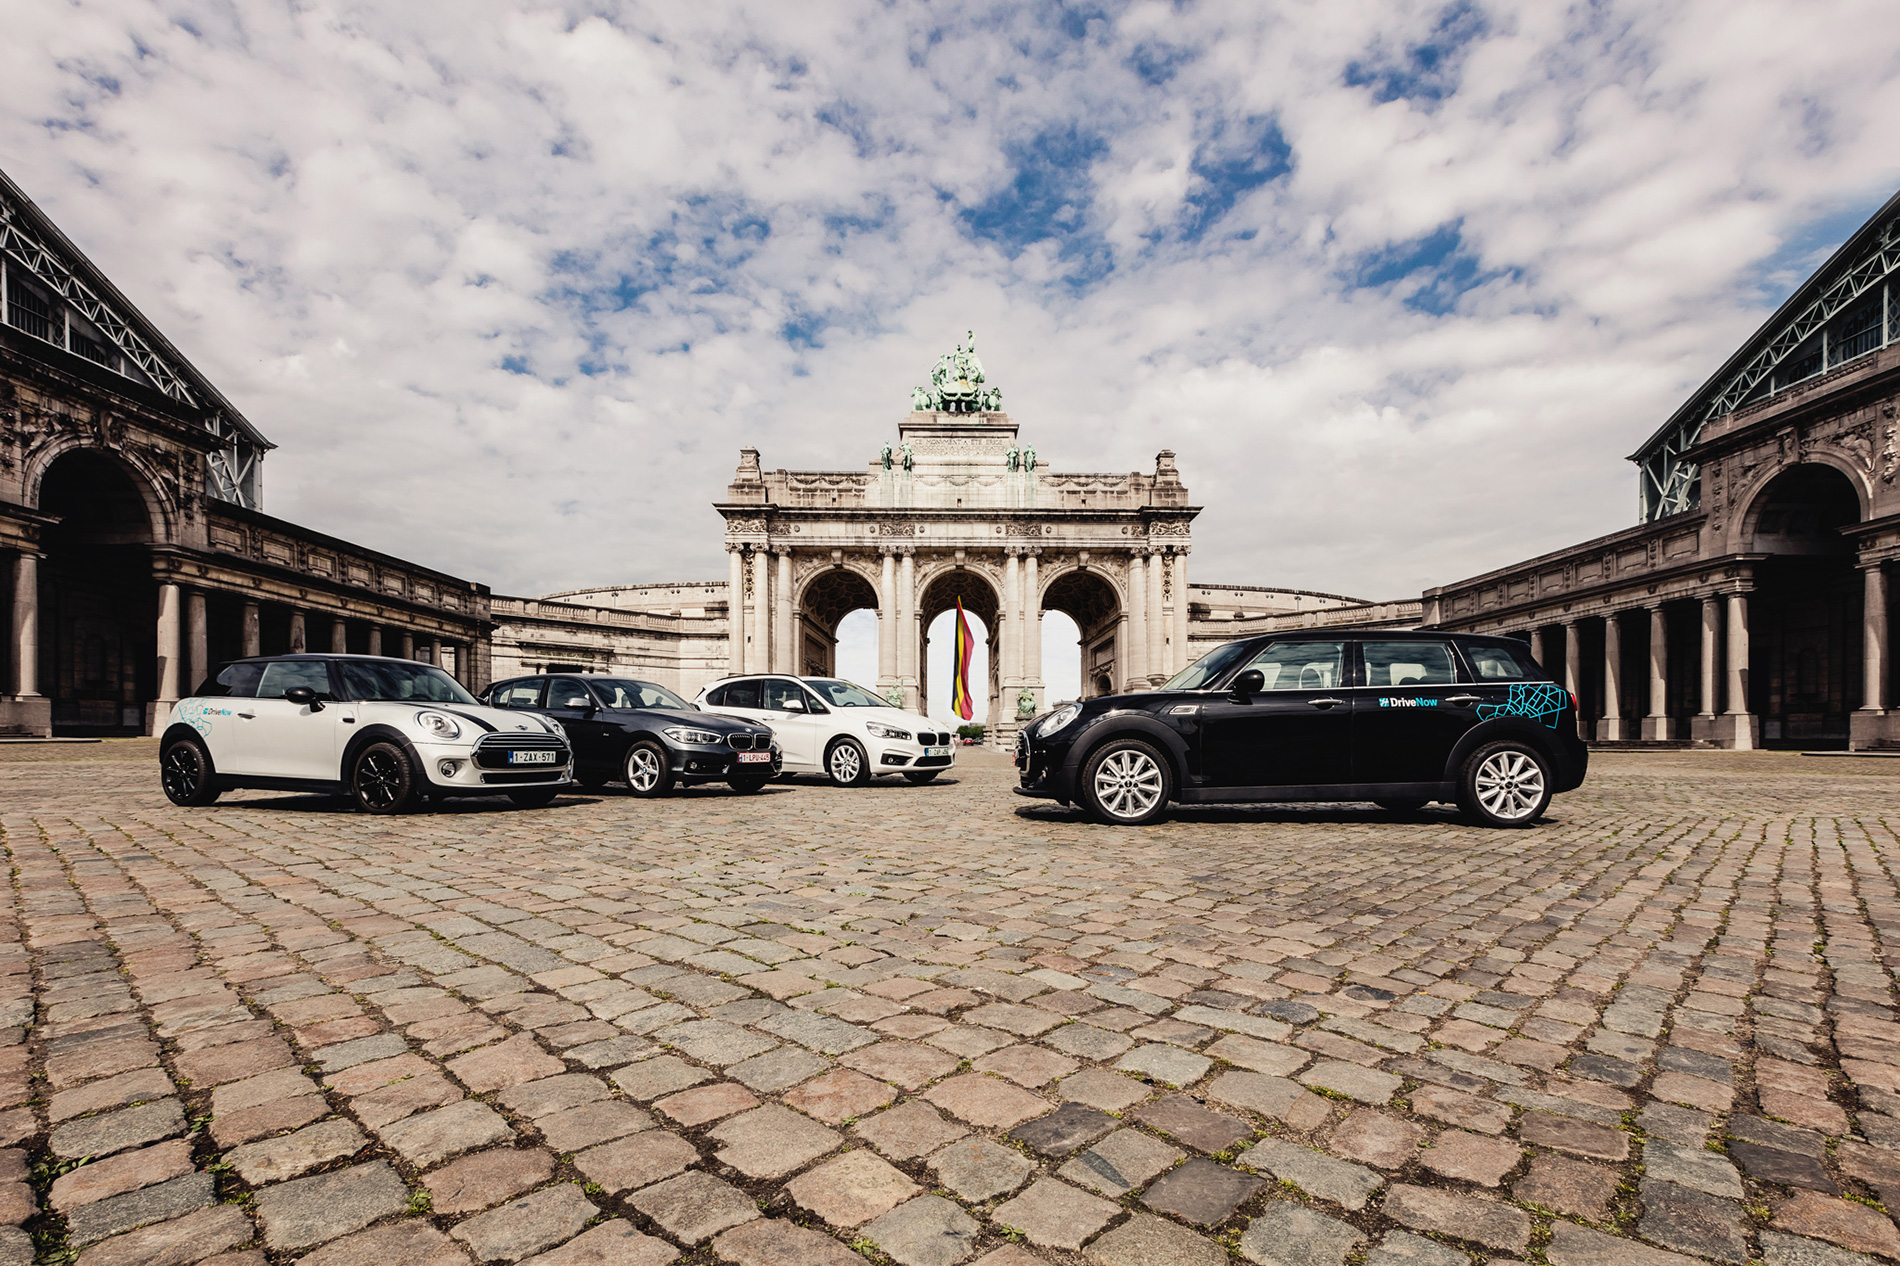 Drivenow Düsseldorf Bmw S Drivenow Program Is Extending Its Service To Brussels